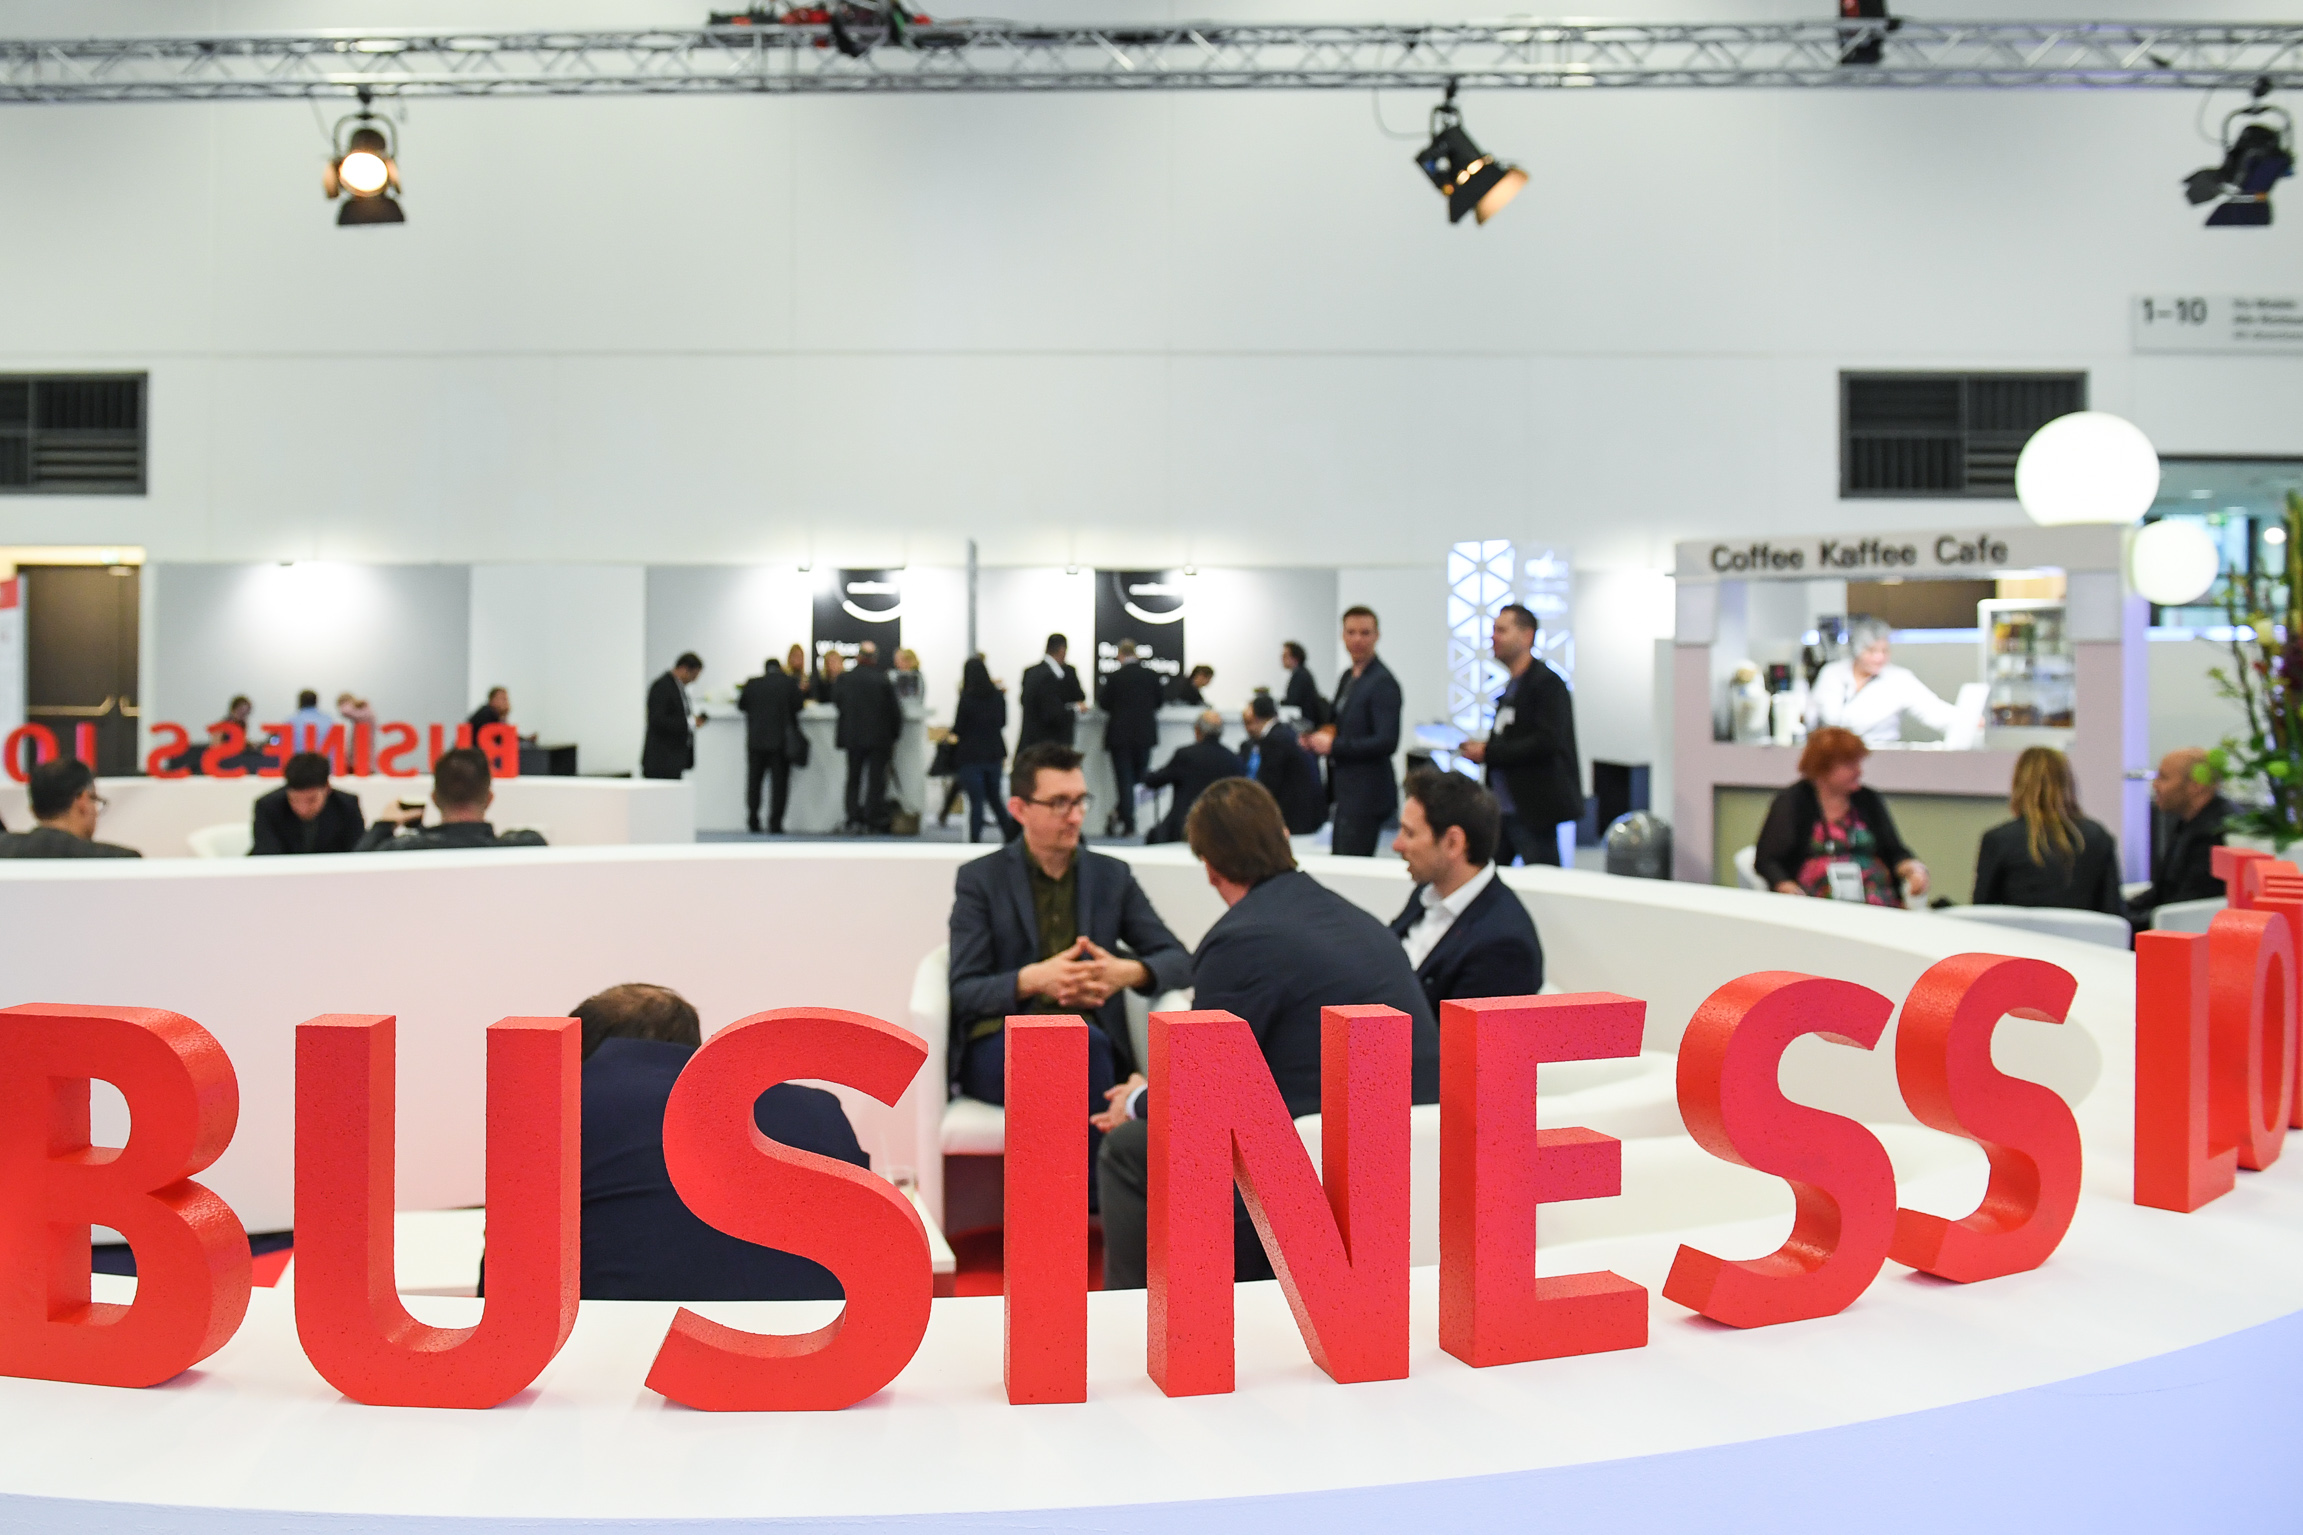 Business conversation at a trade fair